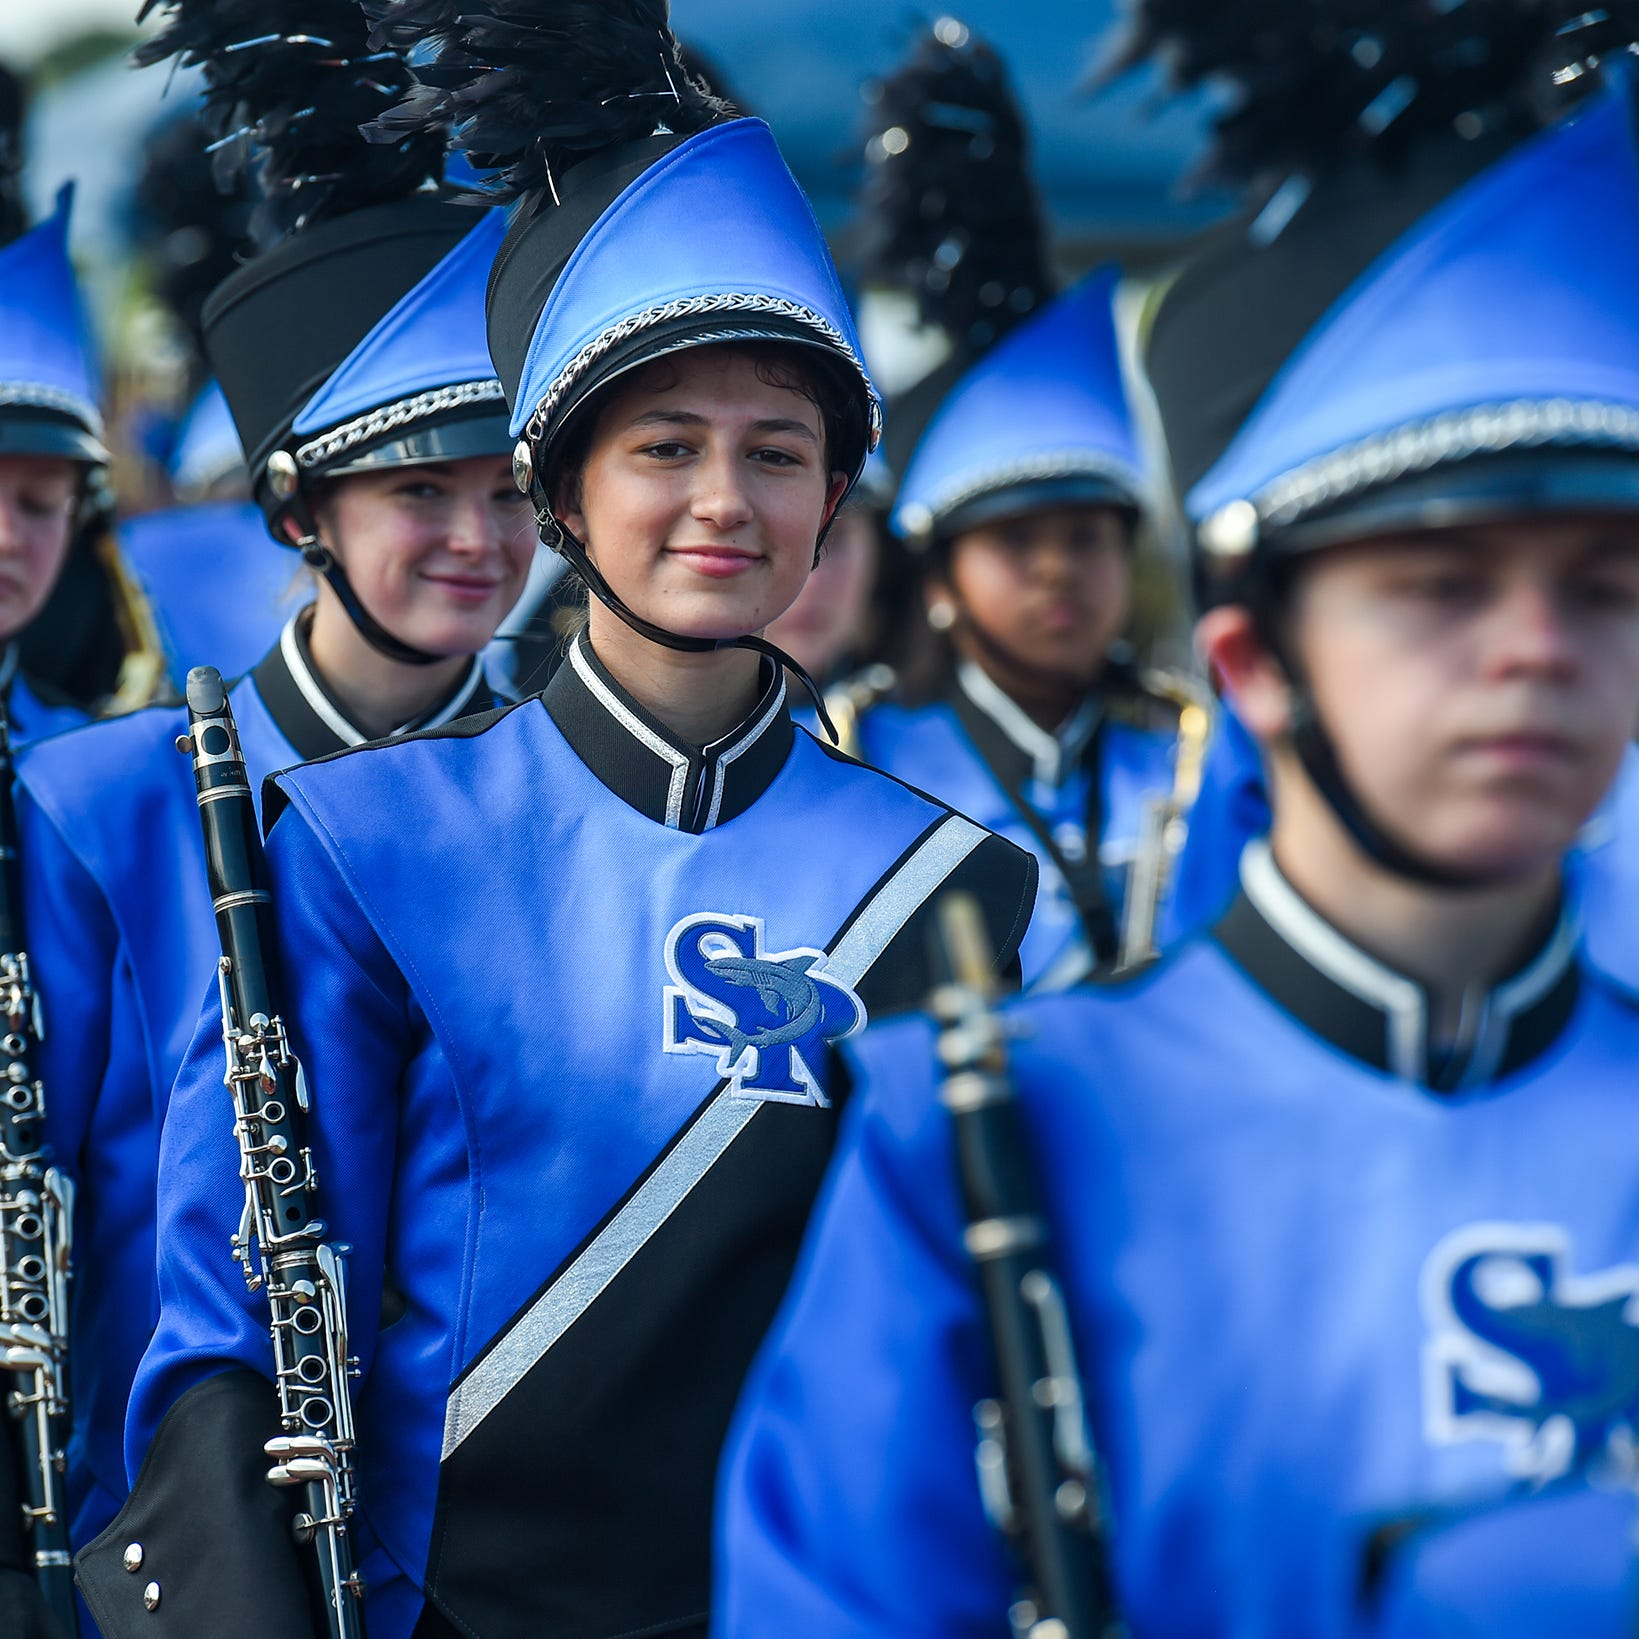 Sebastian River High band tops field in Crown Jewel finals